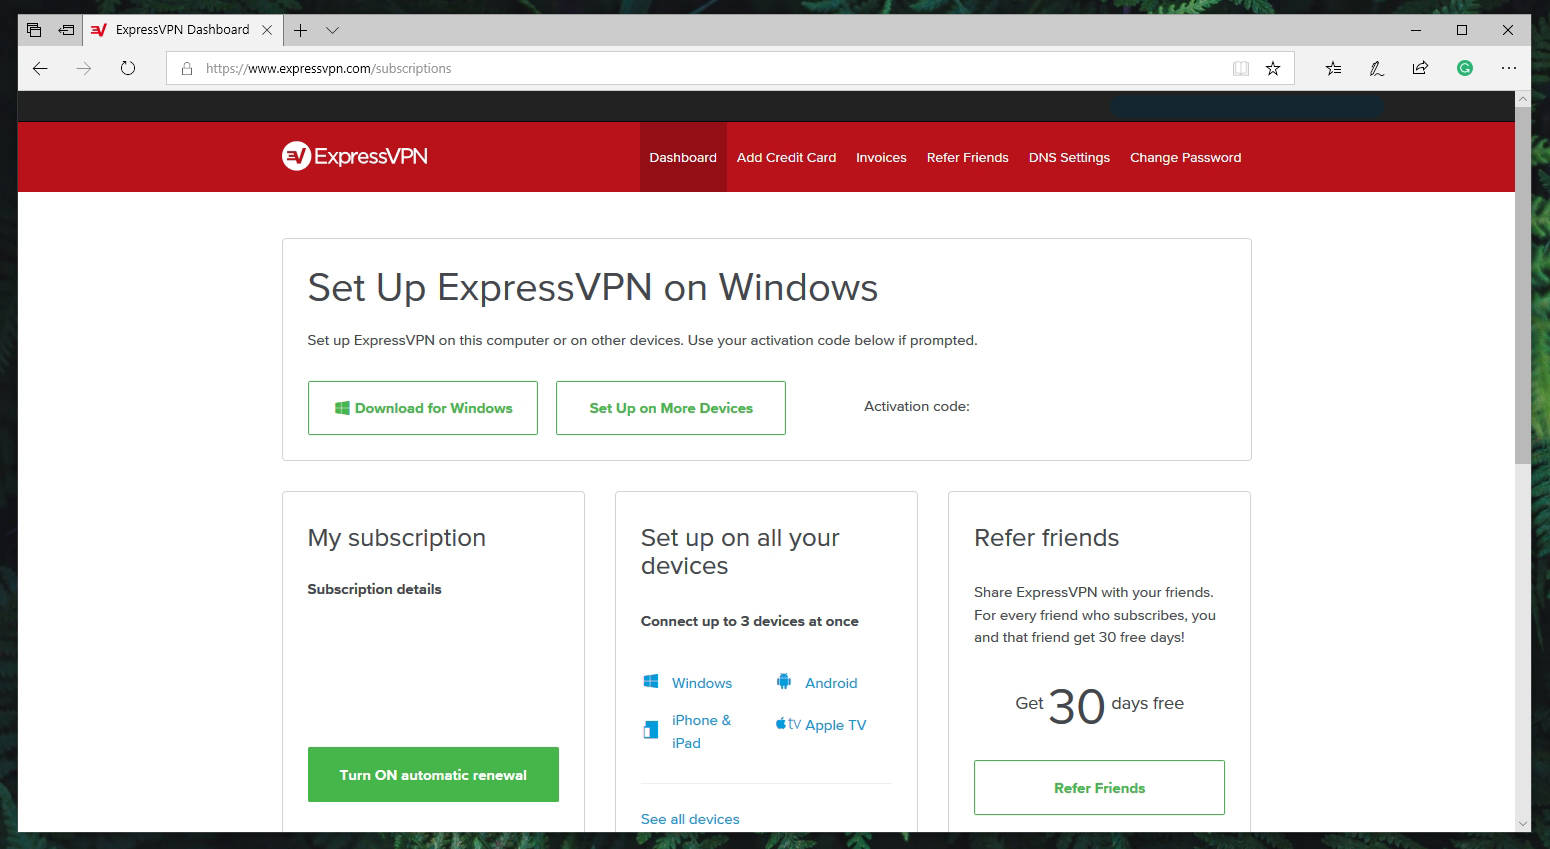 ExpressVPN Account Details